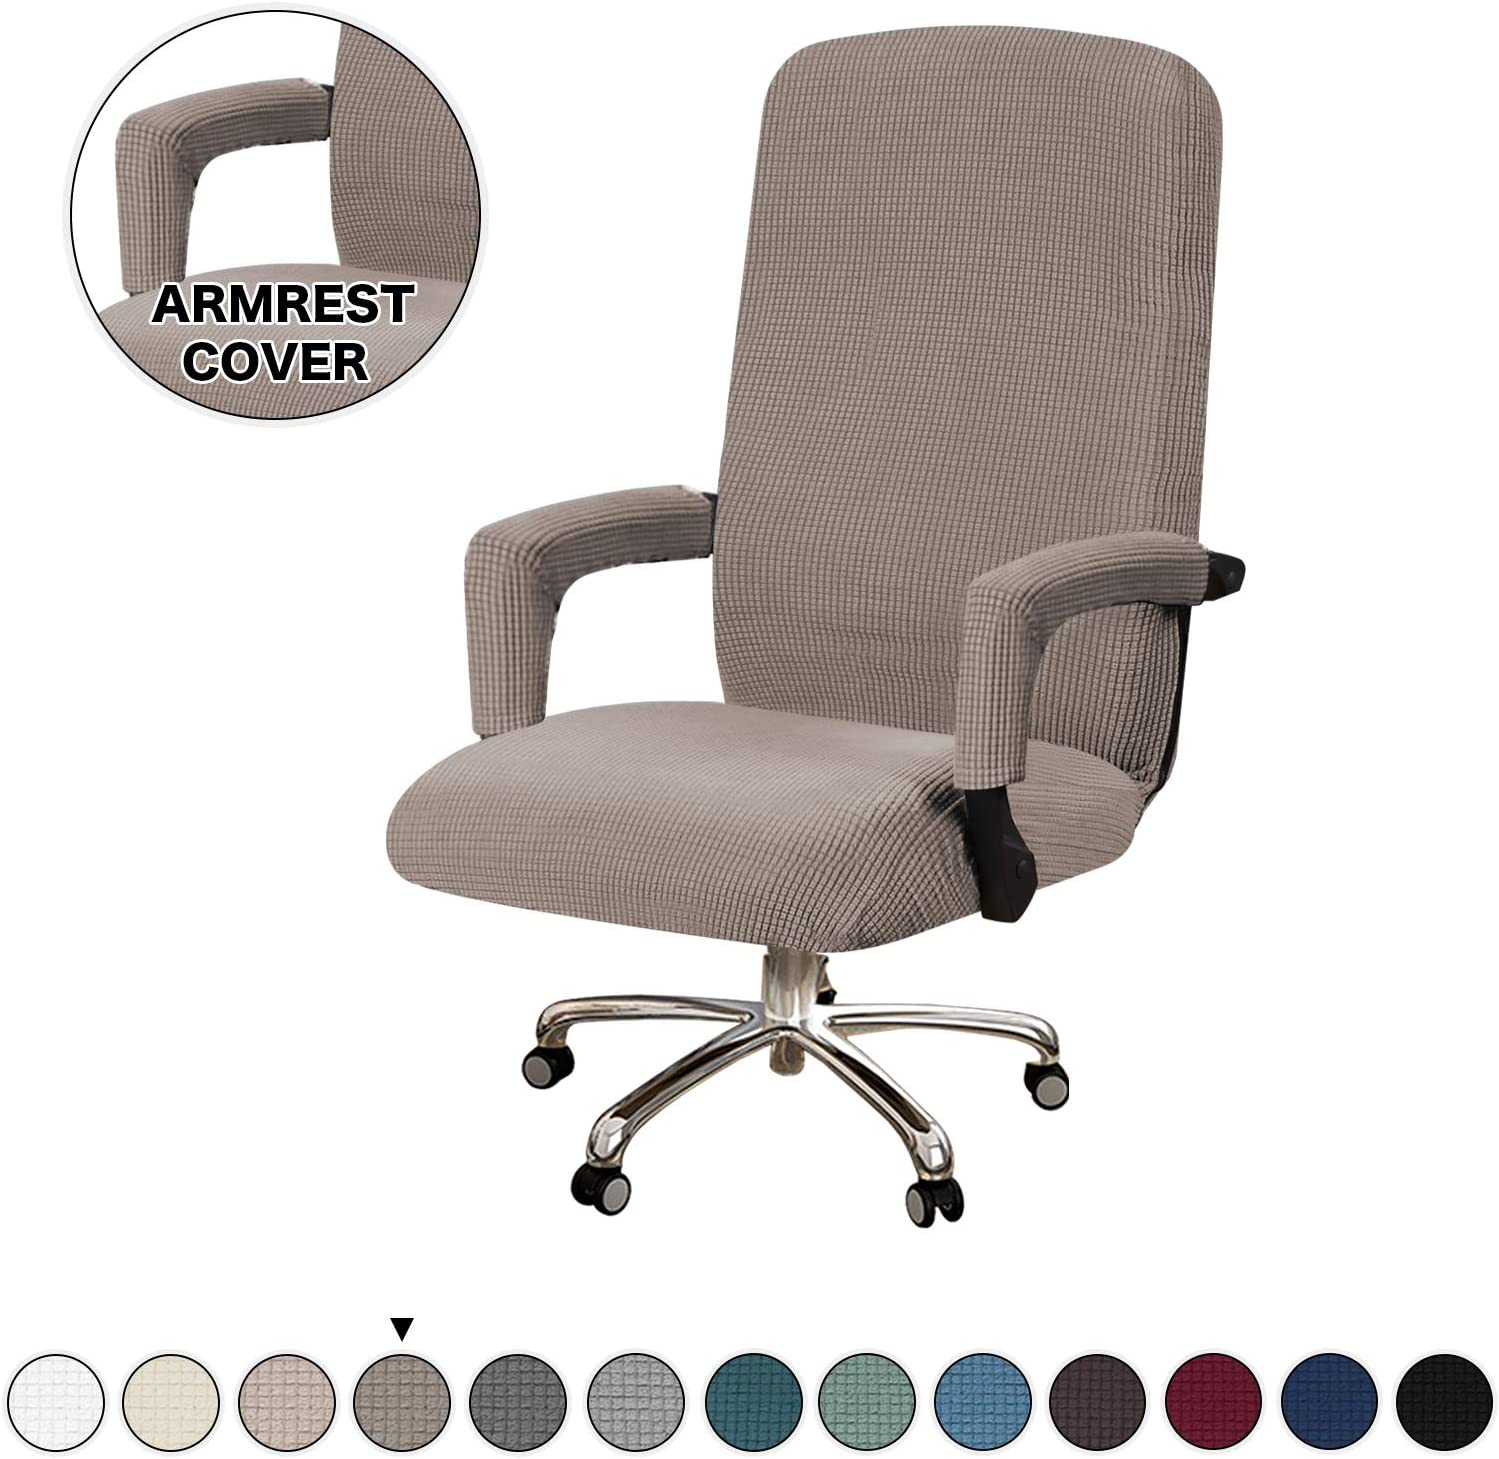 Turquoize Office Chair Cover Stretch Computer Office Chair Cover for High Back Chair Cover with Armrest Cover Jacquard Slipcover for Office Chair Seat Covers, Machine Washable, Medium, Taupe